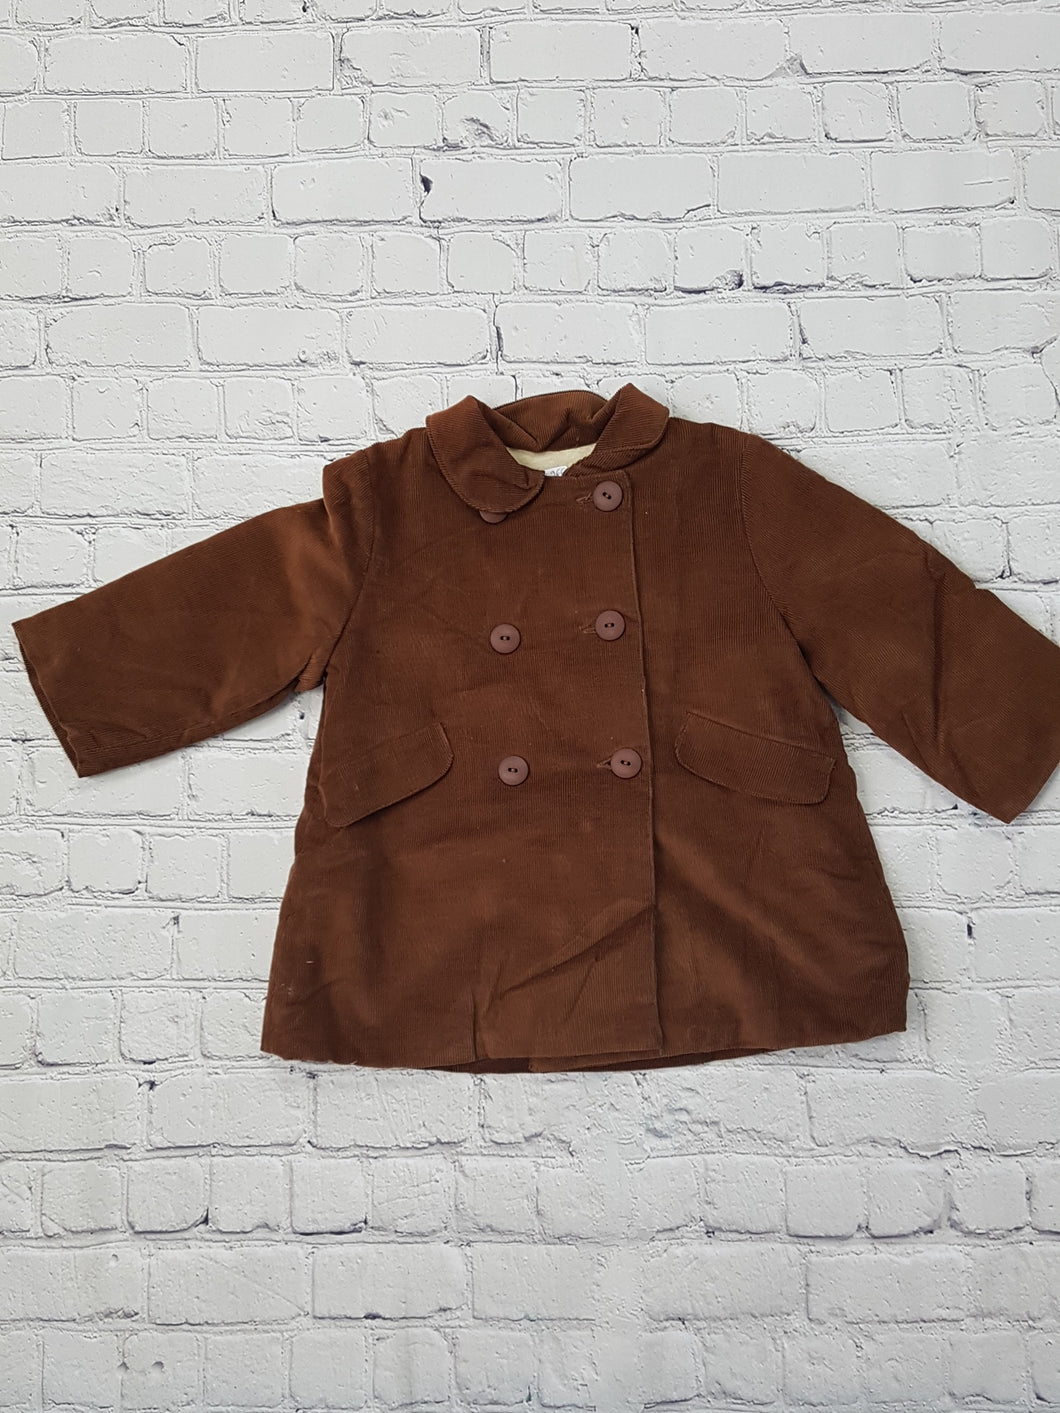 AMAIA outlet baby coat light brown 12m - FAMILY AFFAIRE